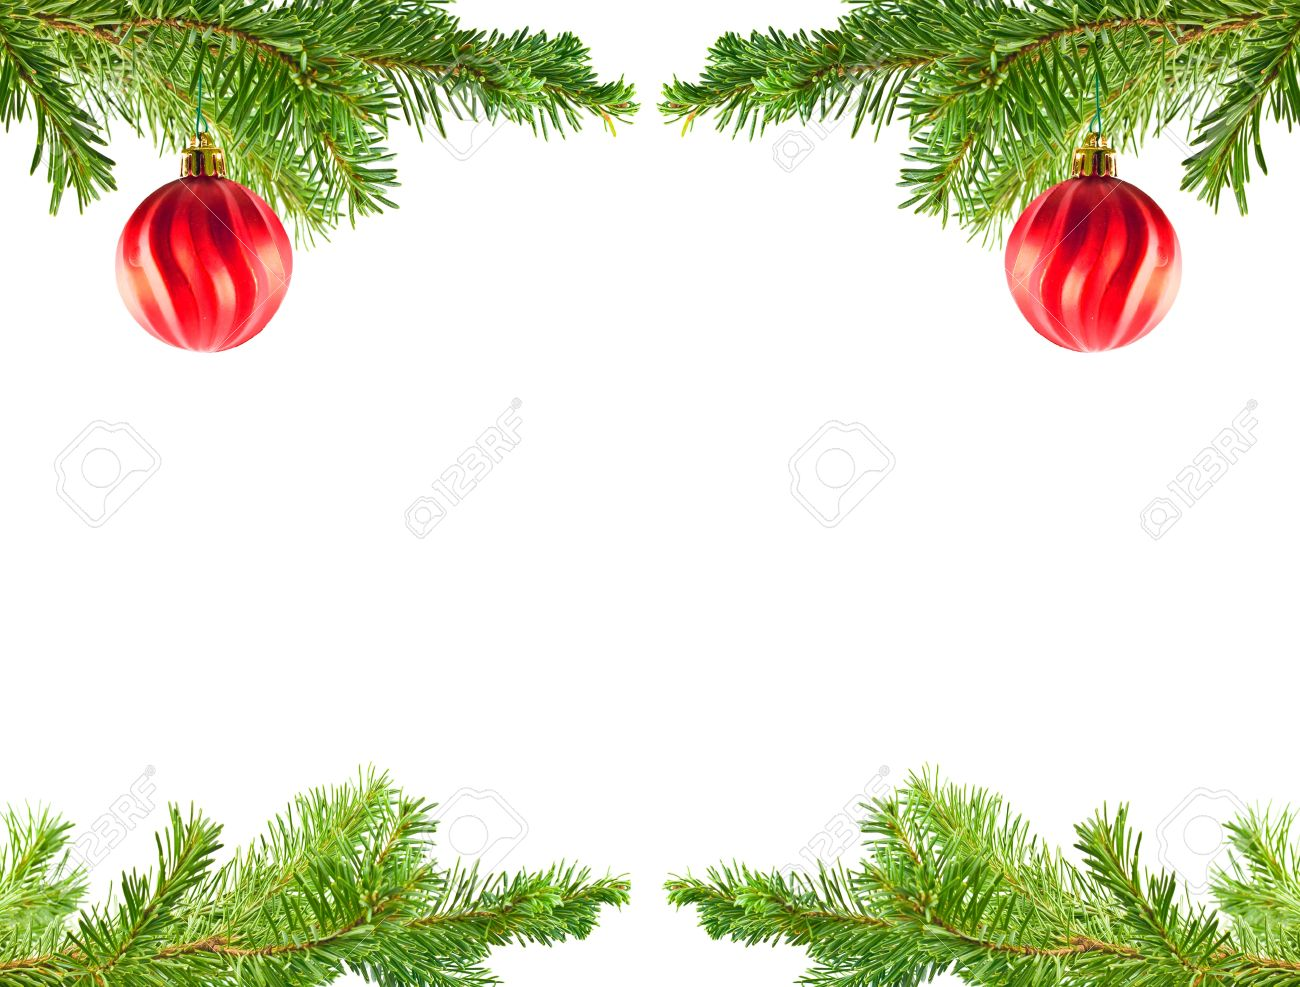 Christmas ornament frame - Christmas Tree Holiday Ornaments On An Evergreen Branch Frame Stock Photo 12675276